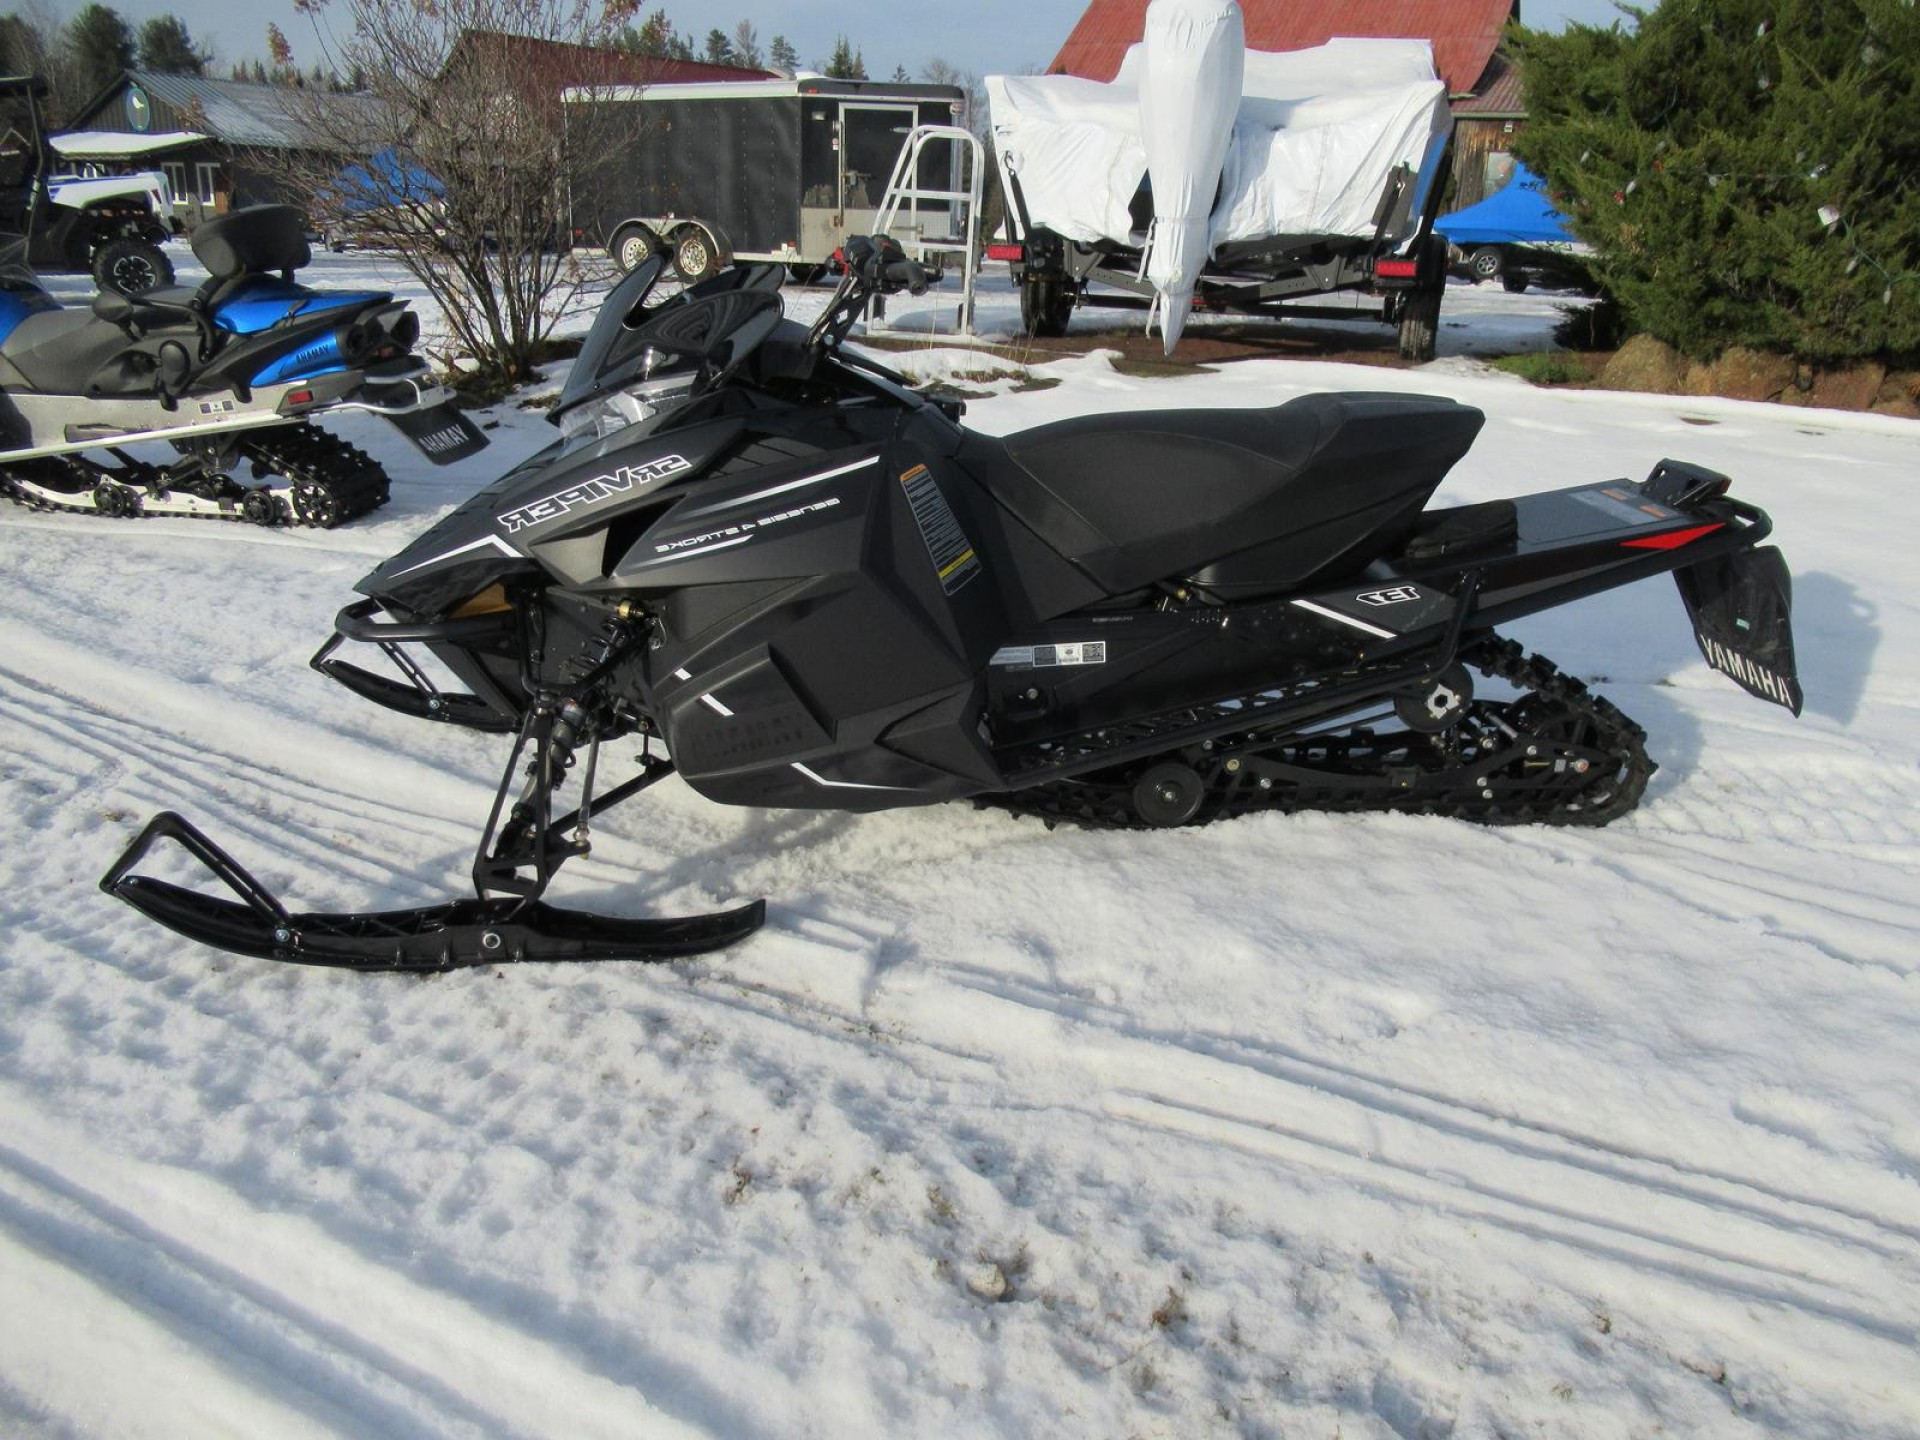 Yamaha RS Vector Snowmobiles Two Up: Yamaha Srviper L Tx Apsley On Kl A I